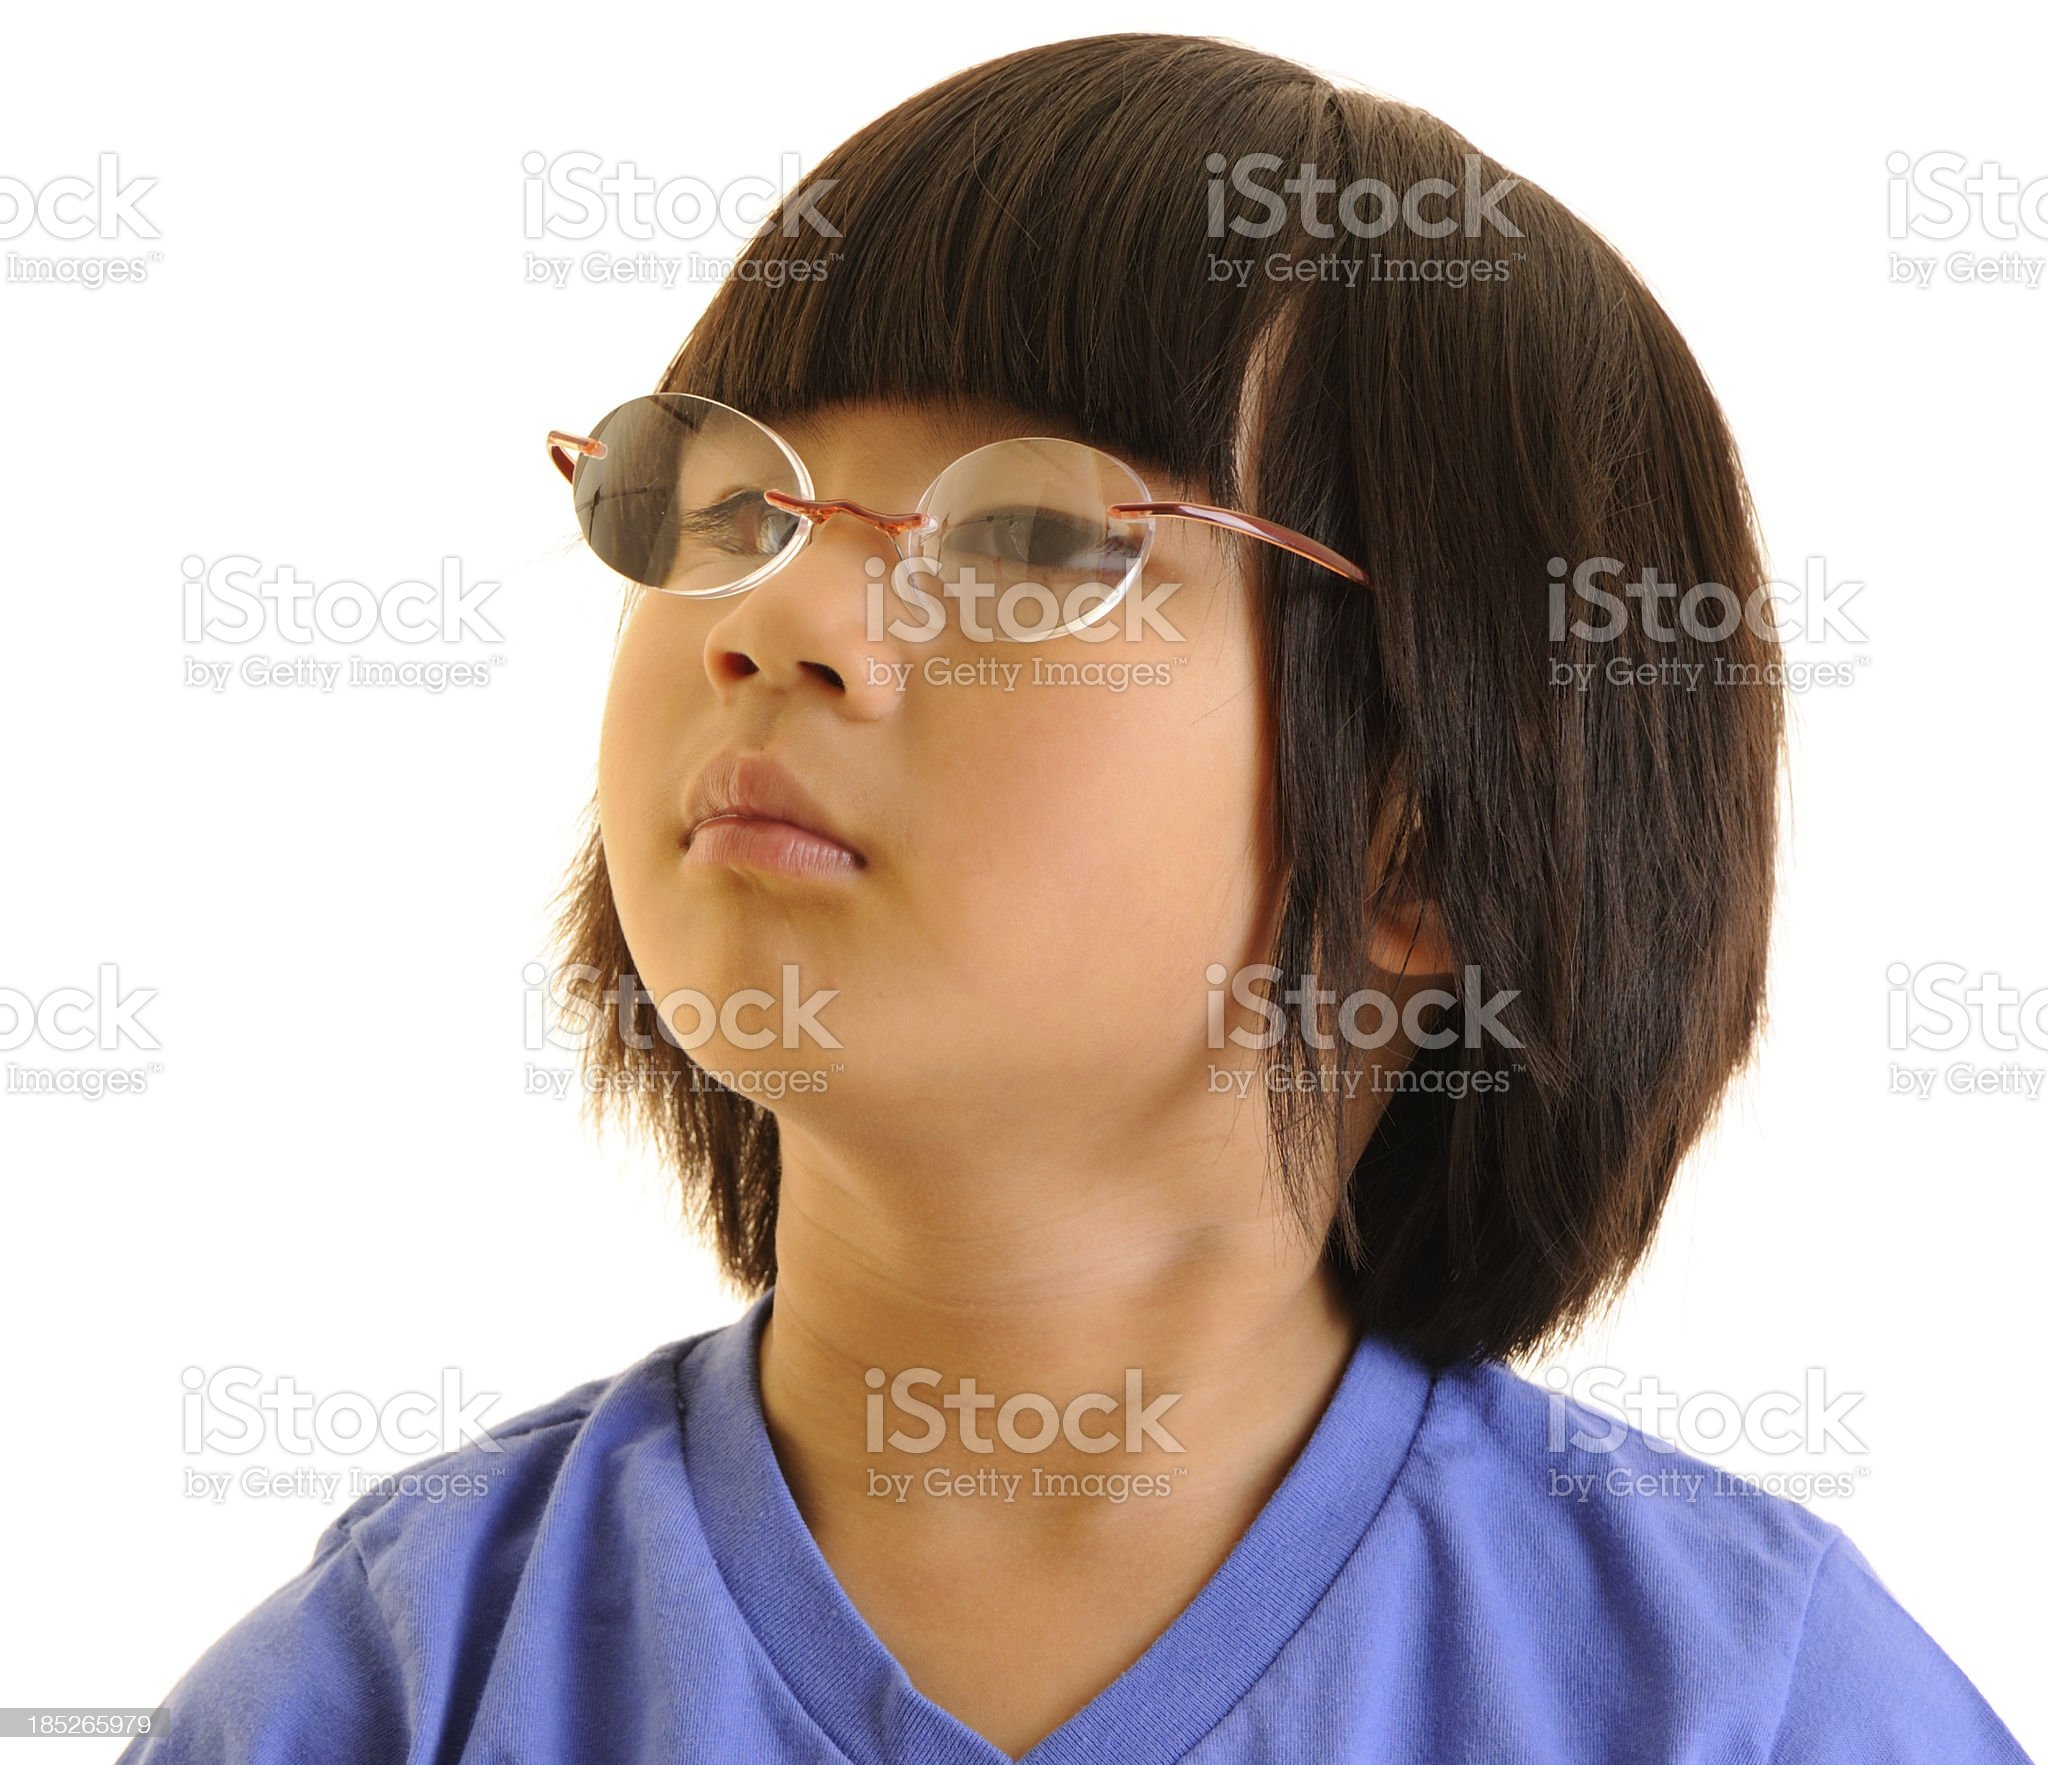 Girl With Glasses And Thoughtful Look royalty-free stock photo